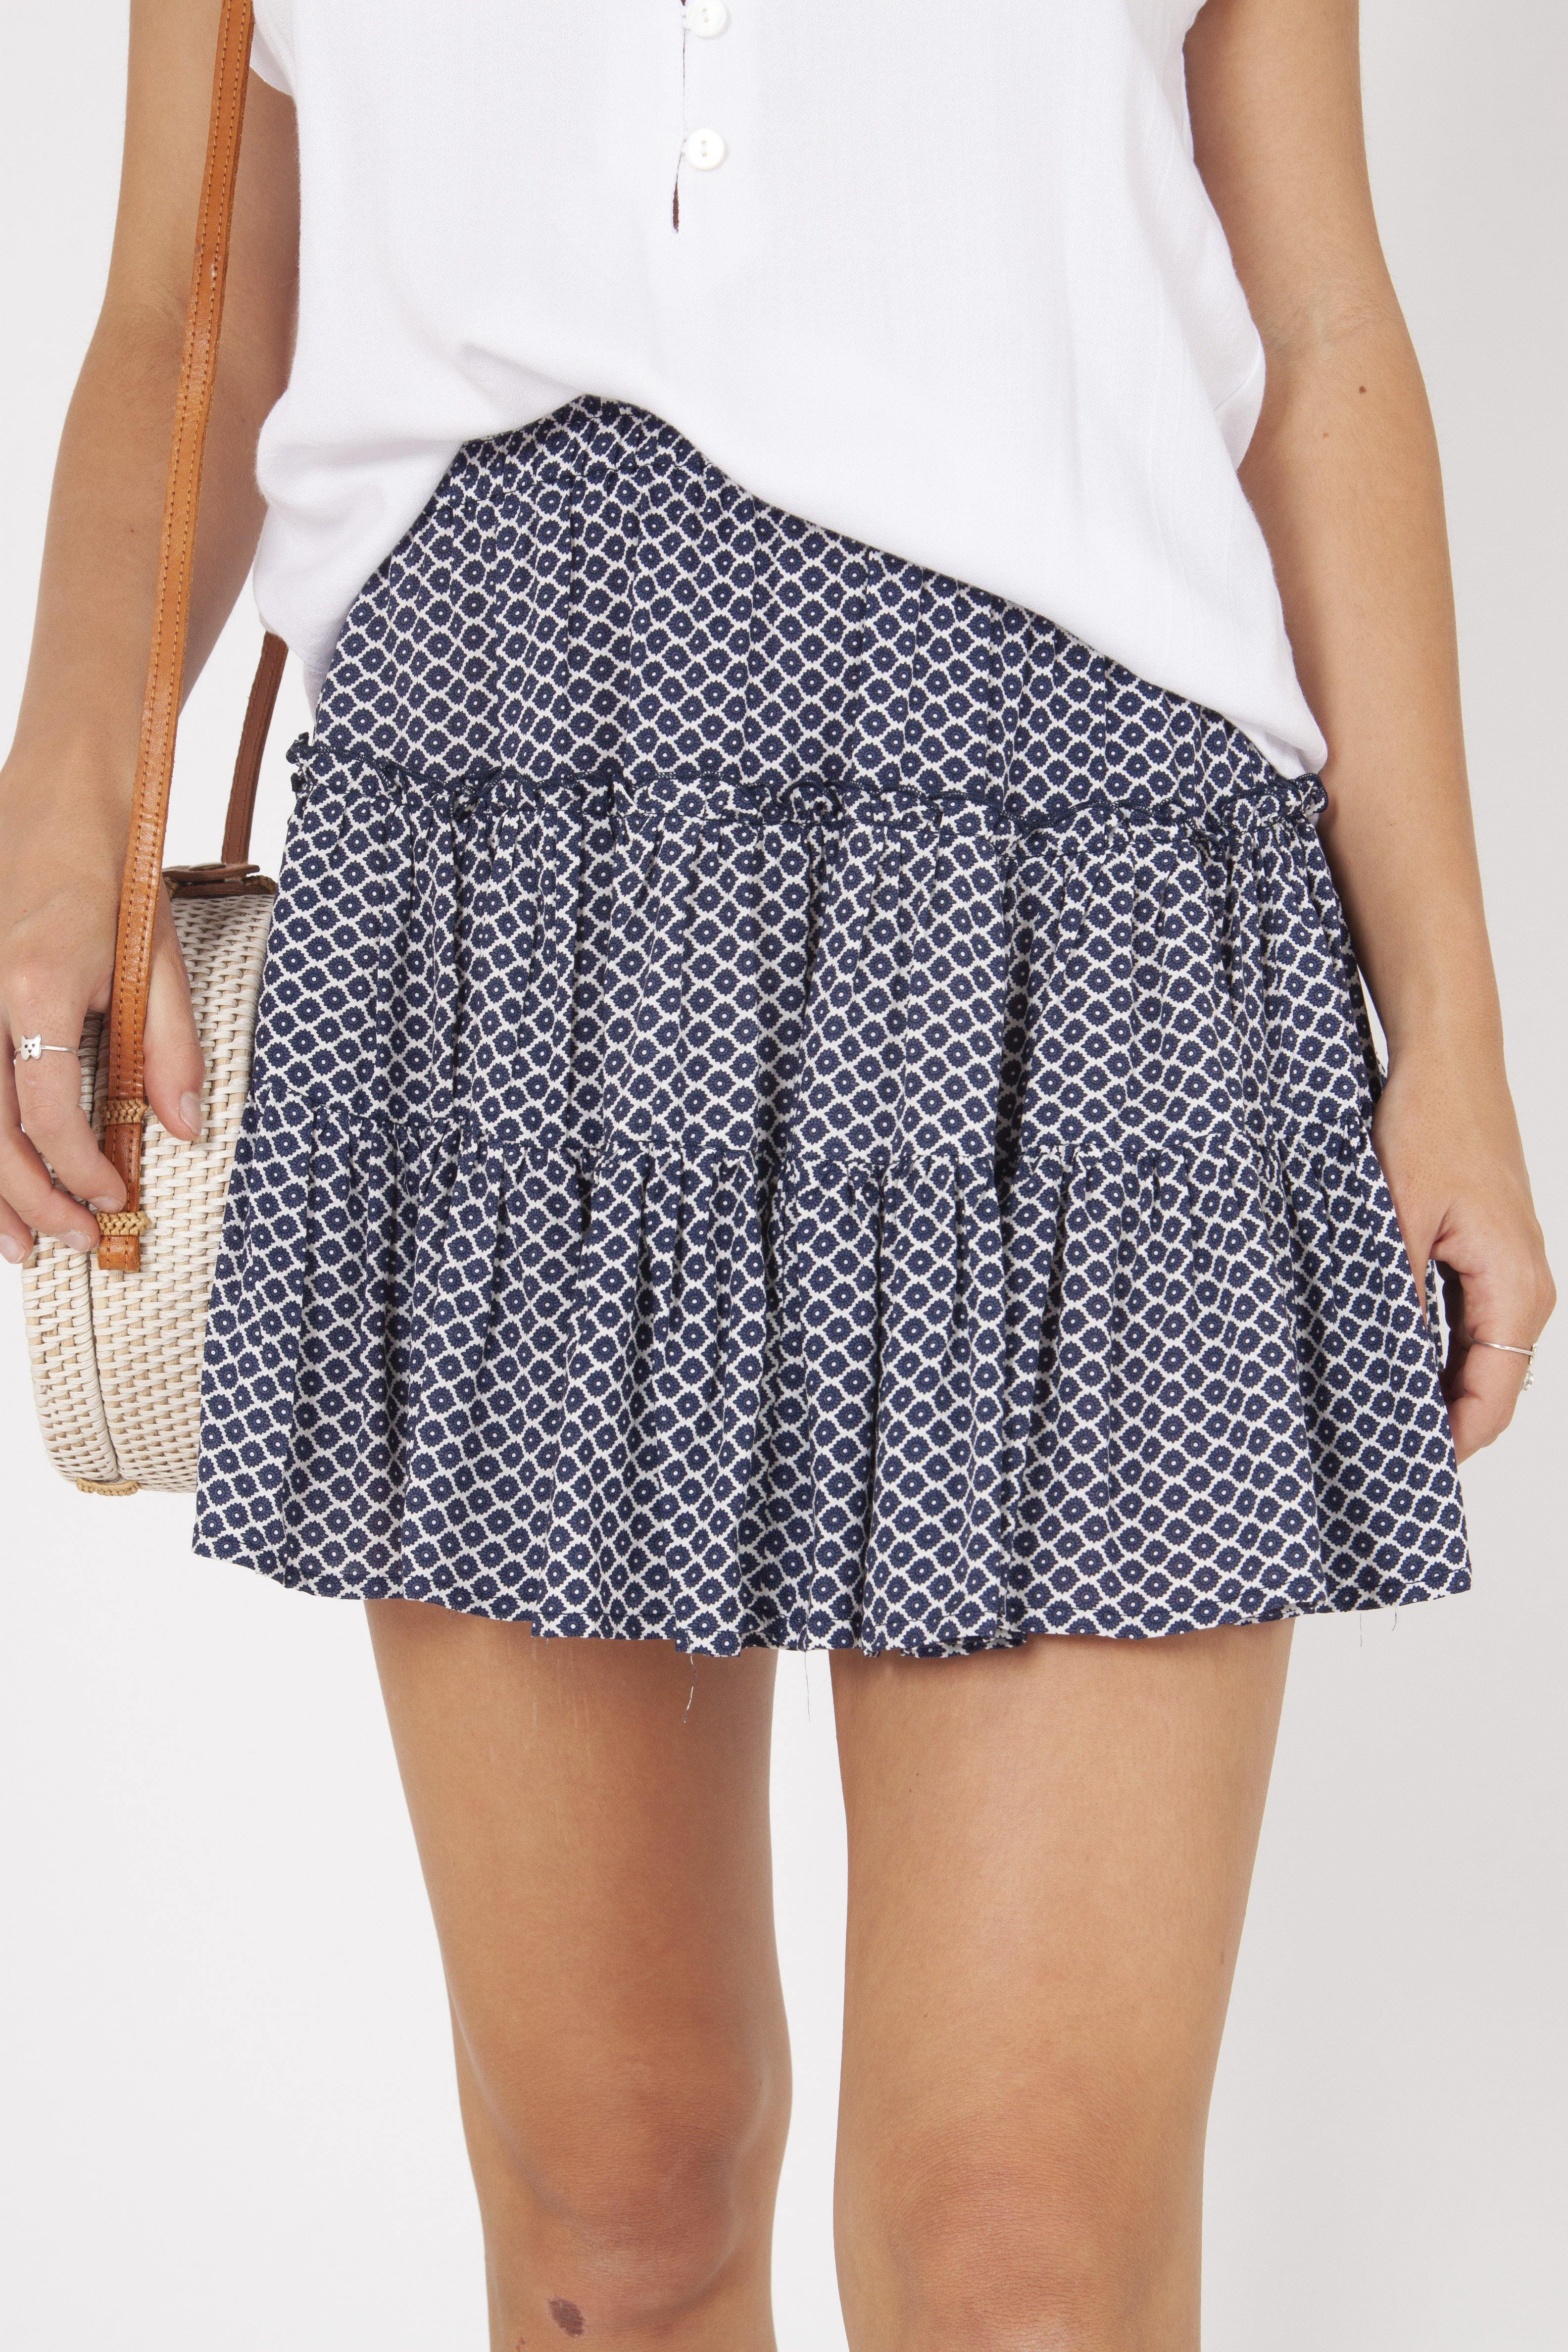 ELSA SKIRT - BLUE STAR